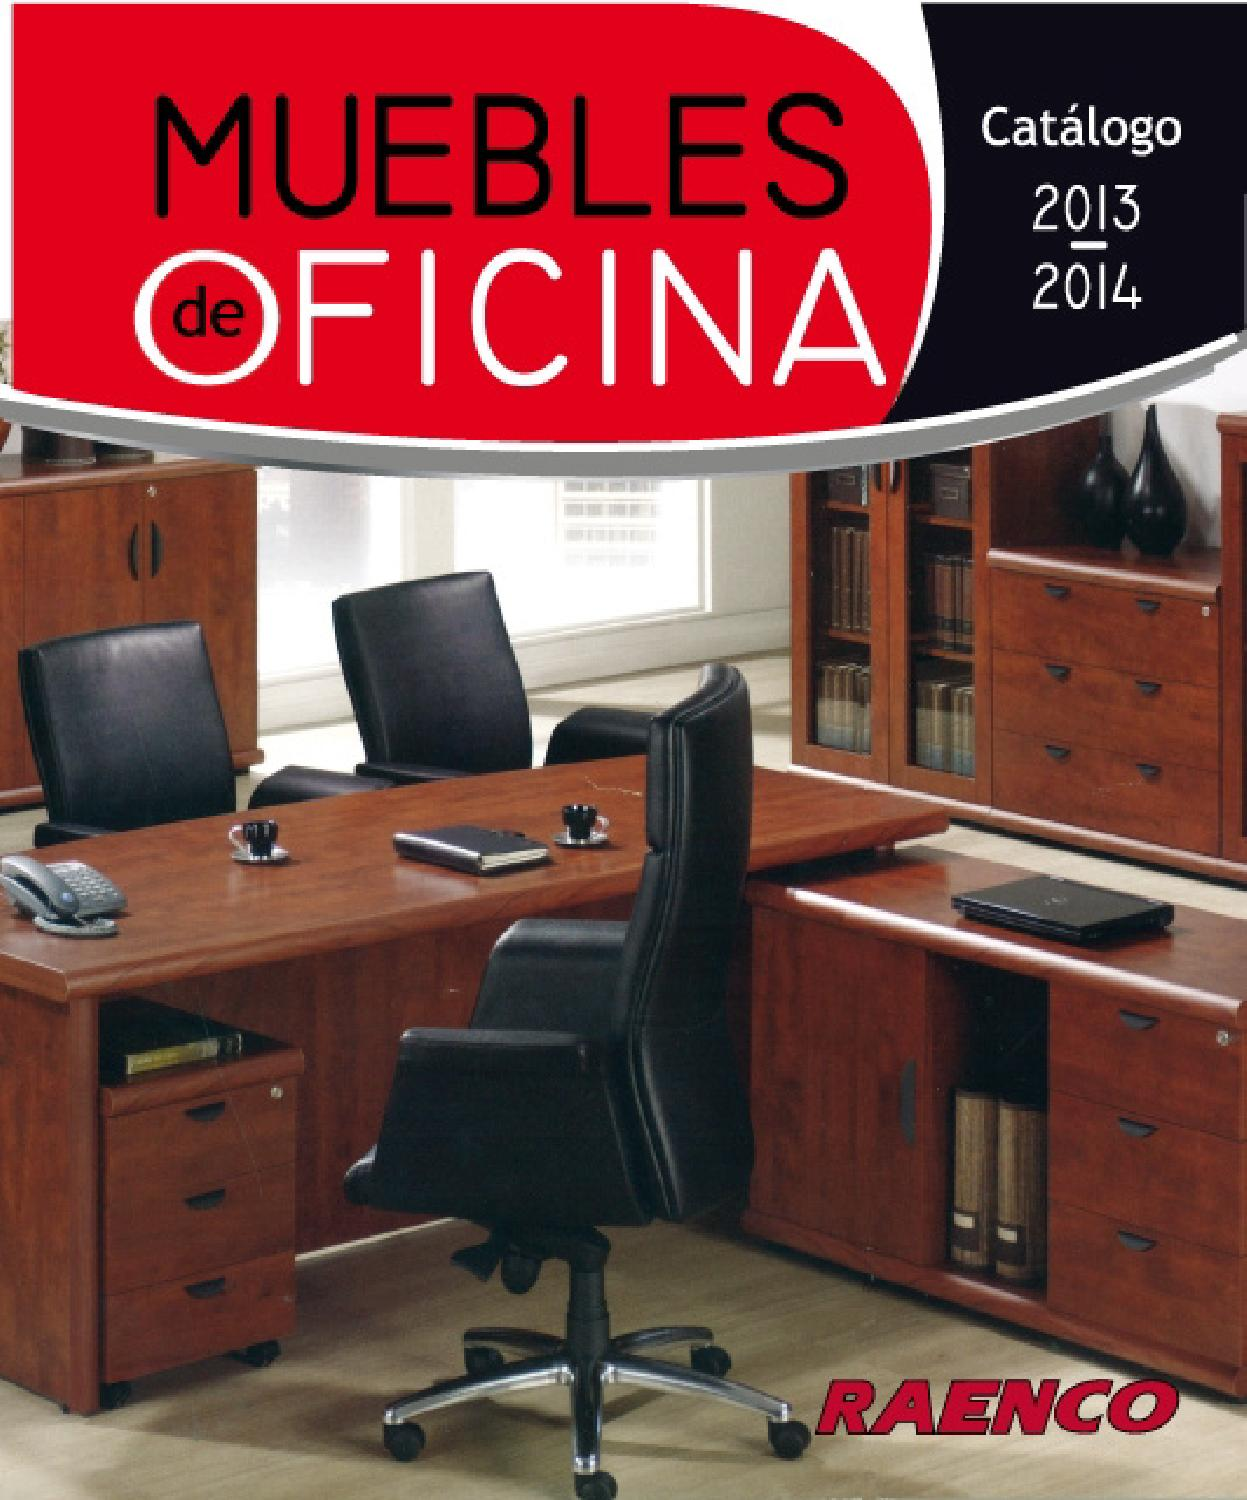 Cat logo raenco oficina by interiores estilo issuu for Catalogo muebles oficina